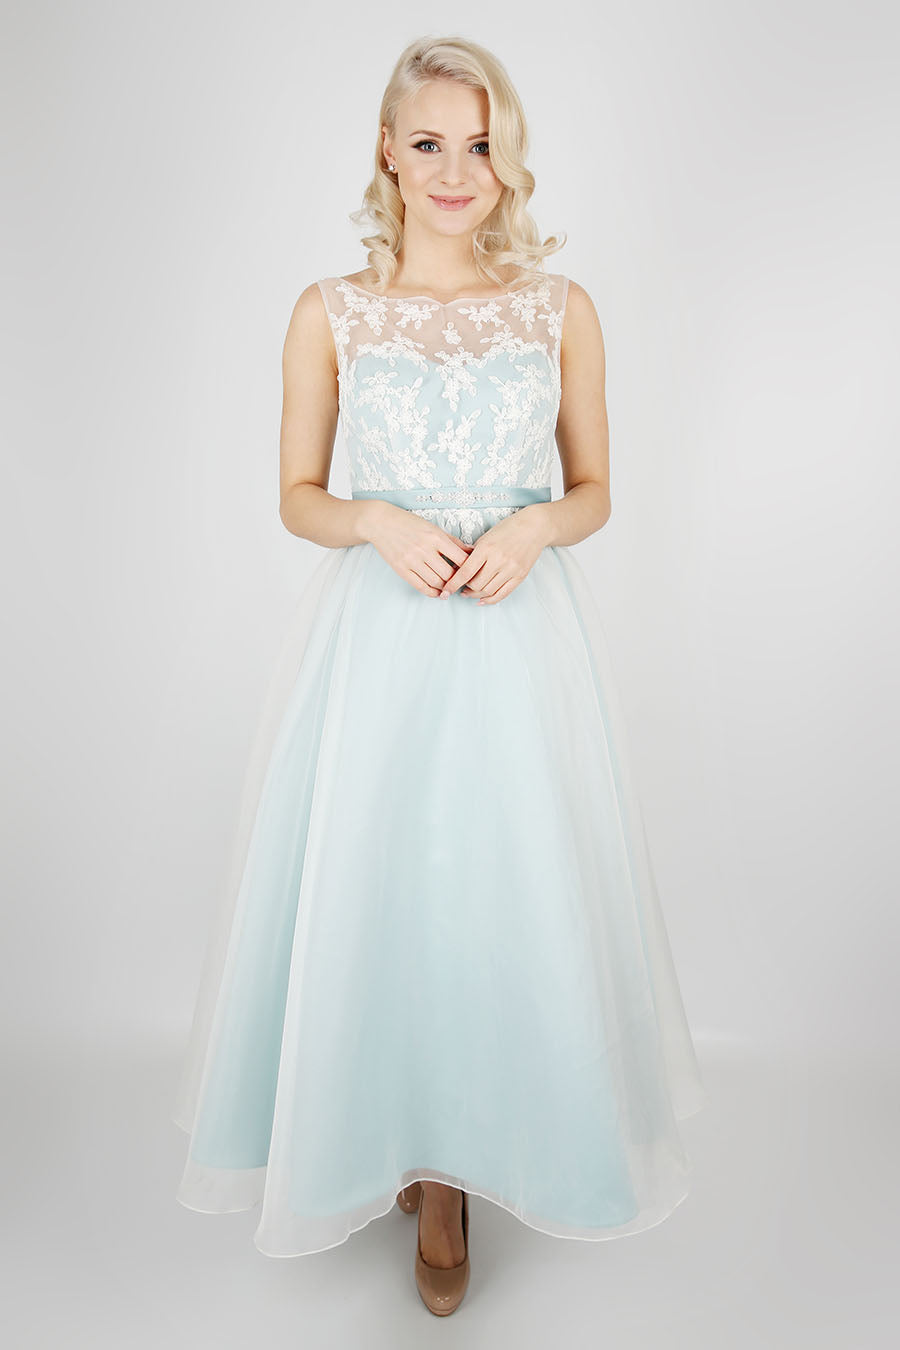 Pretty, feminine bridesmaid dress from the Emma Bridals collection